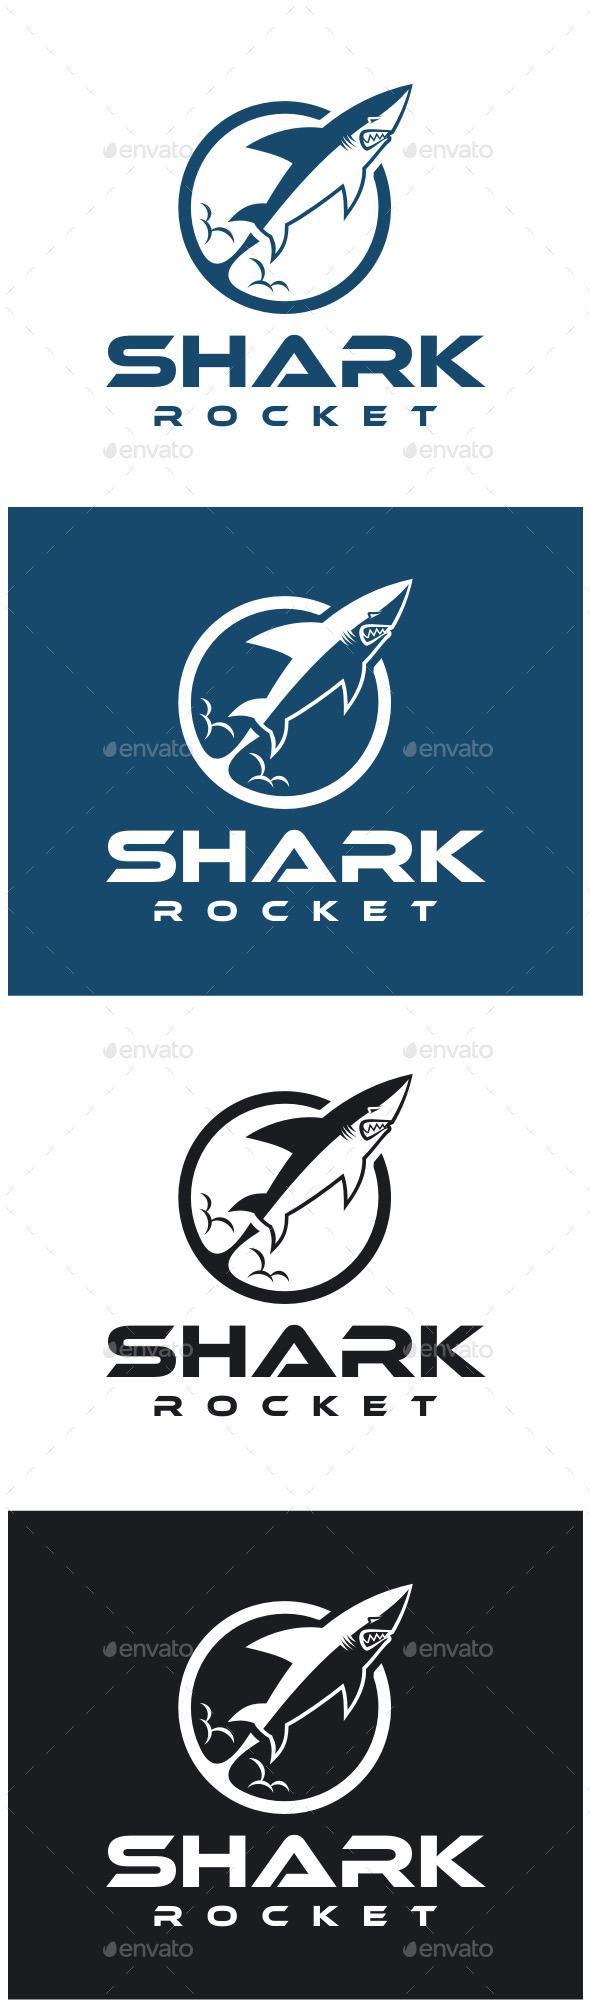 GraphicRiver Shark Rocket Logo 8813538